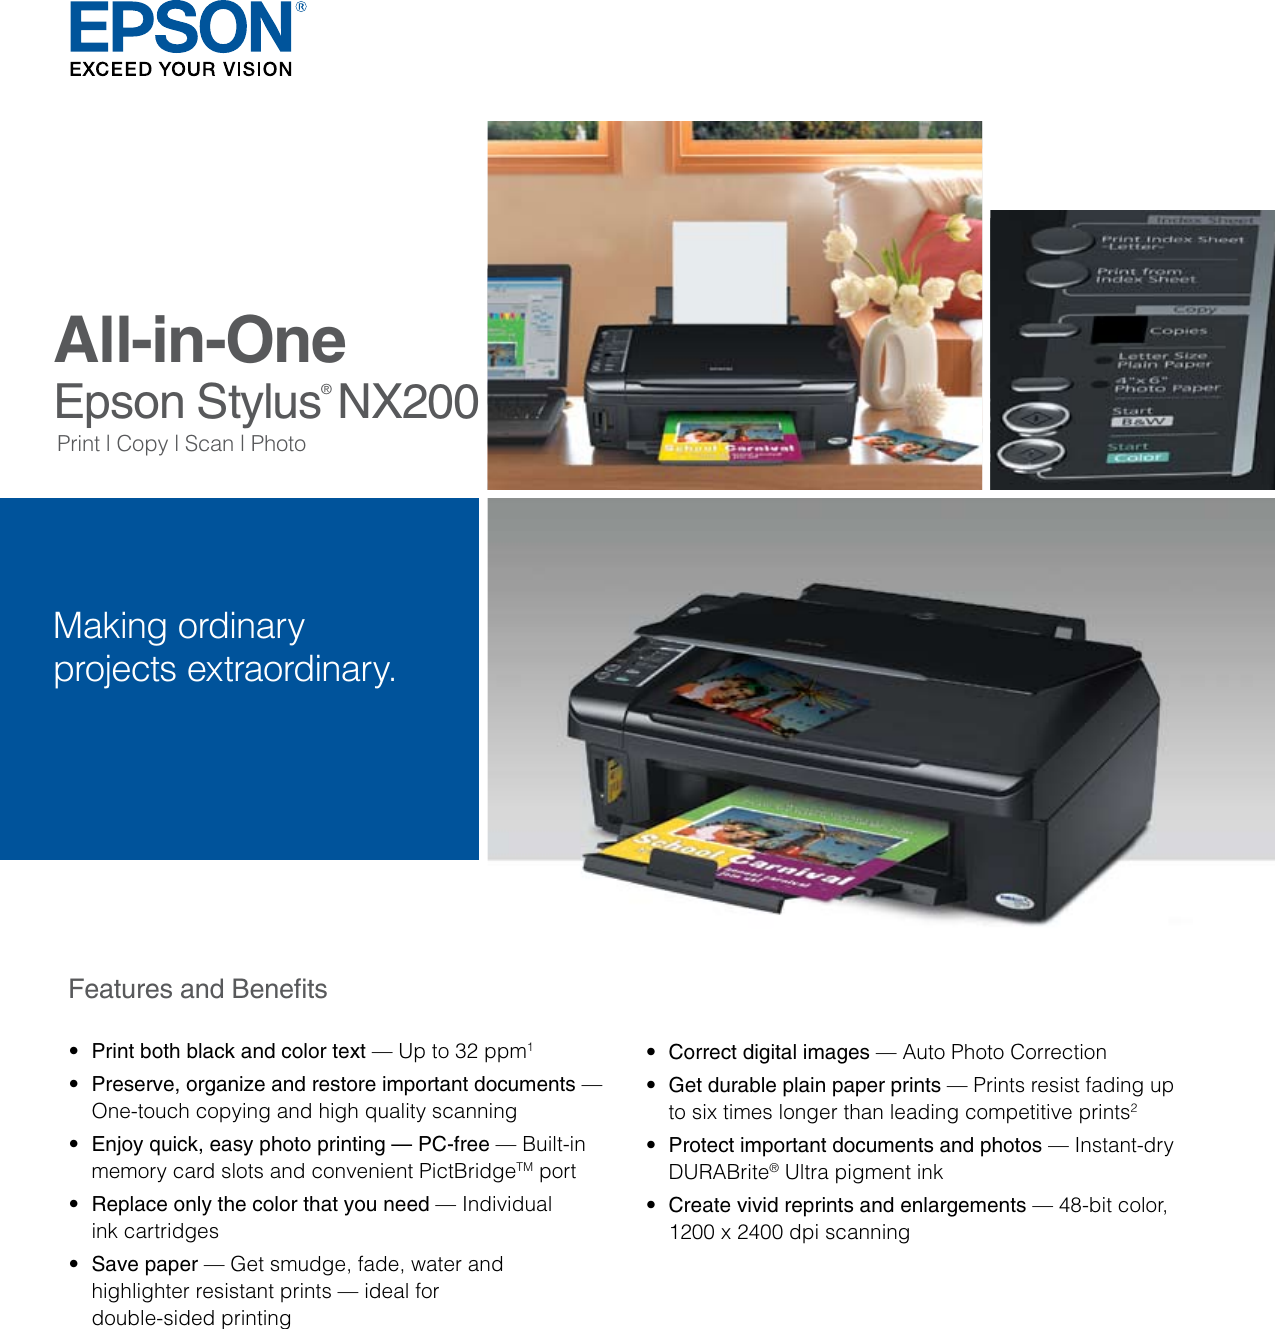 DRIVERS FOR EPSON STYLUS NX200